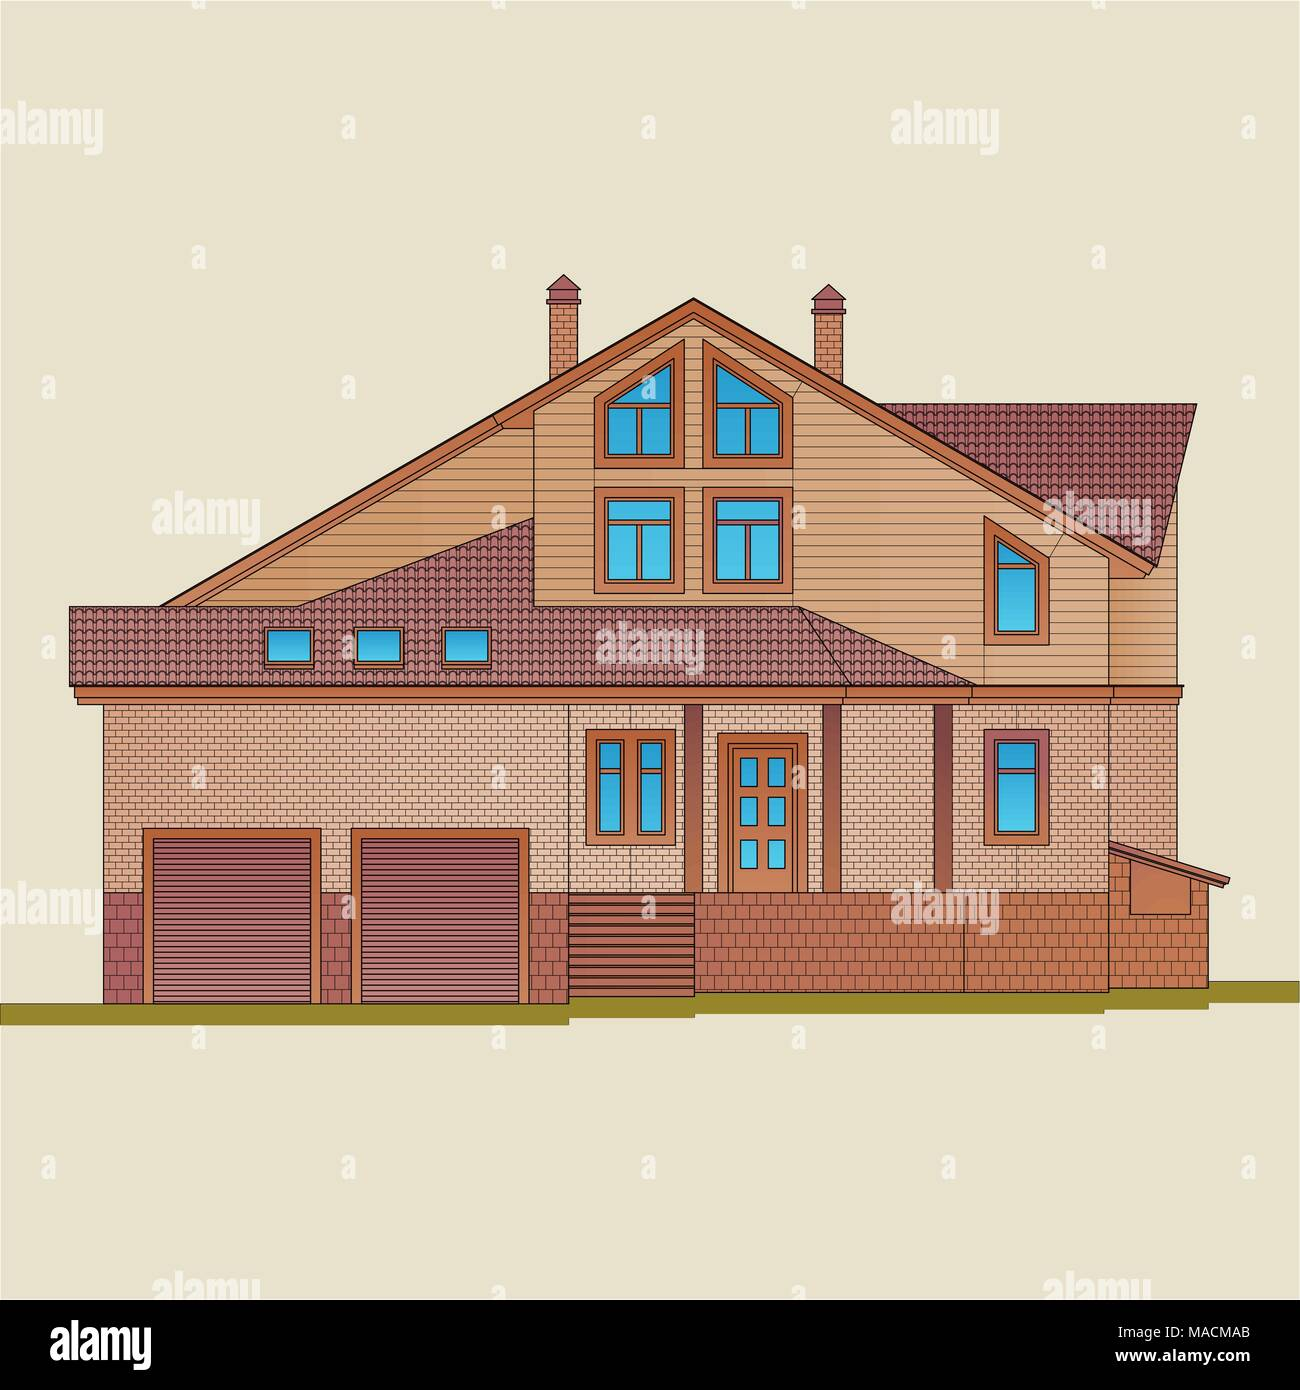 The house is built of light brick and natural wood. American style architecture of a residential building. - Stock Vector